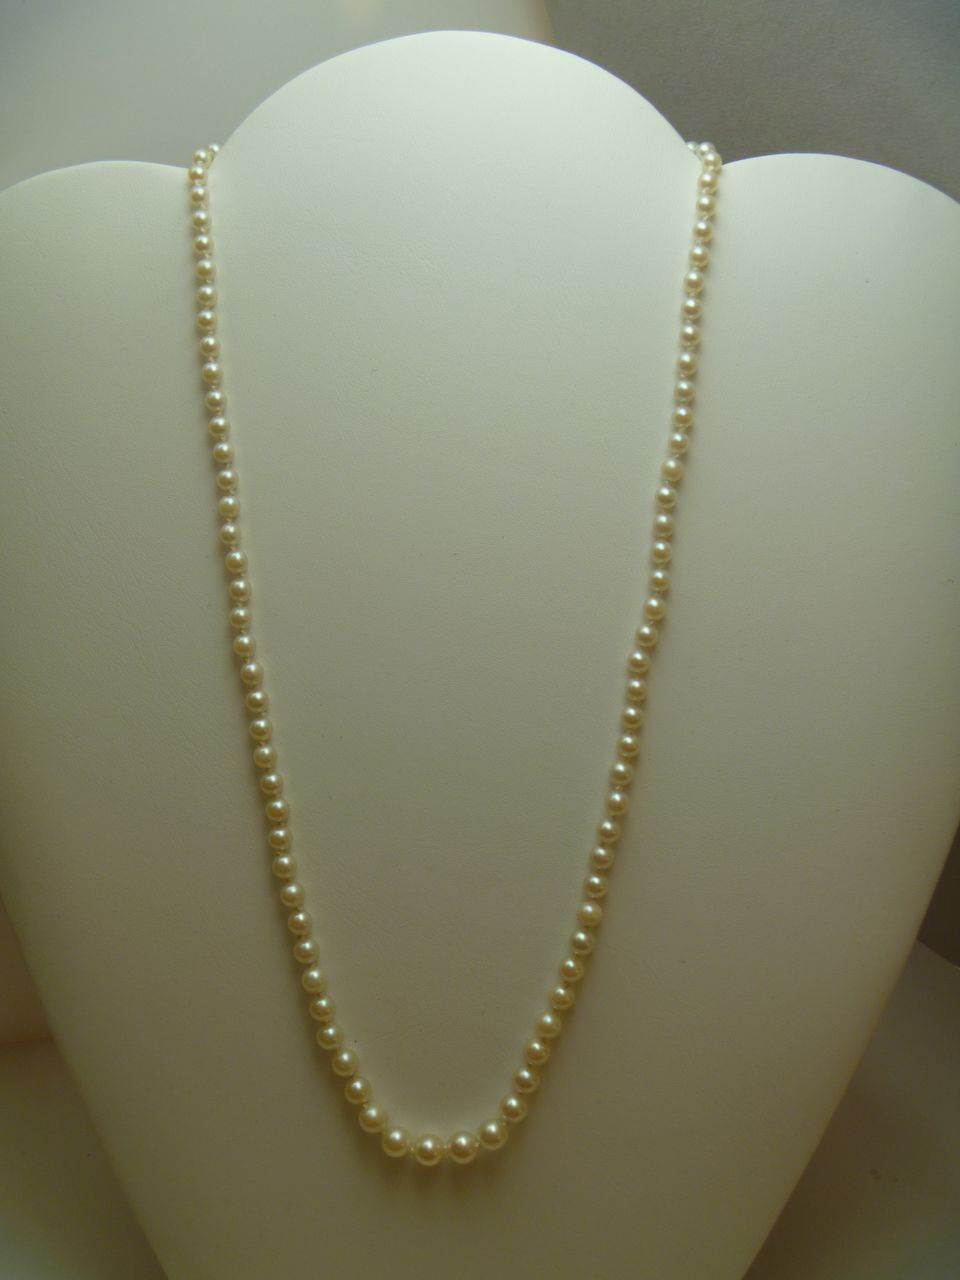 Vintage 1940 S Cultured Pearl Necklace From